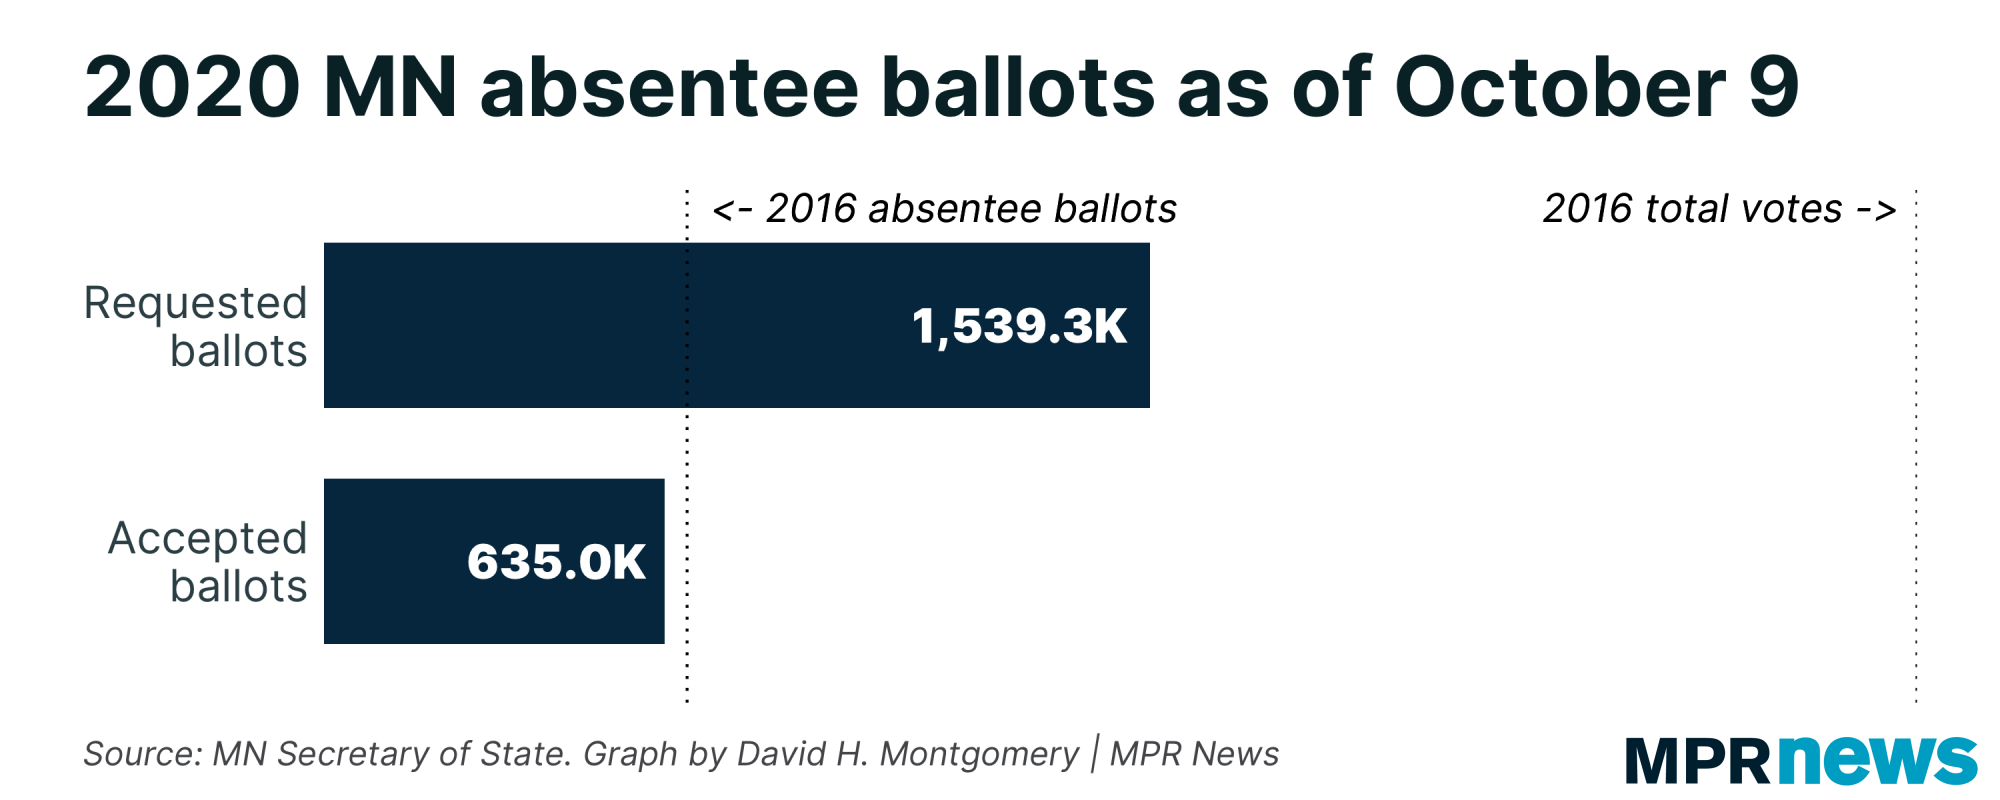 Absentee ballots requested and accepted as of Oct. 9